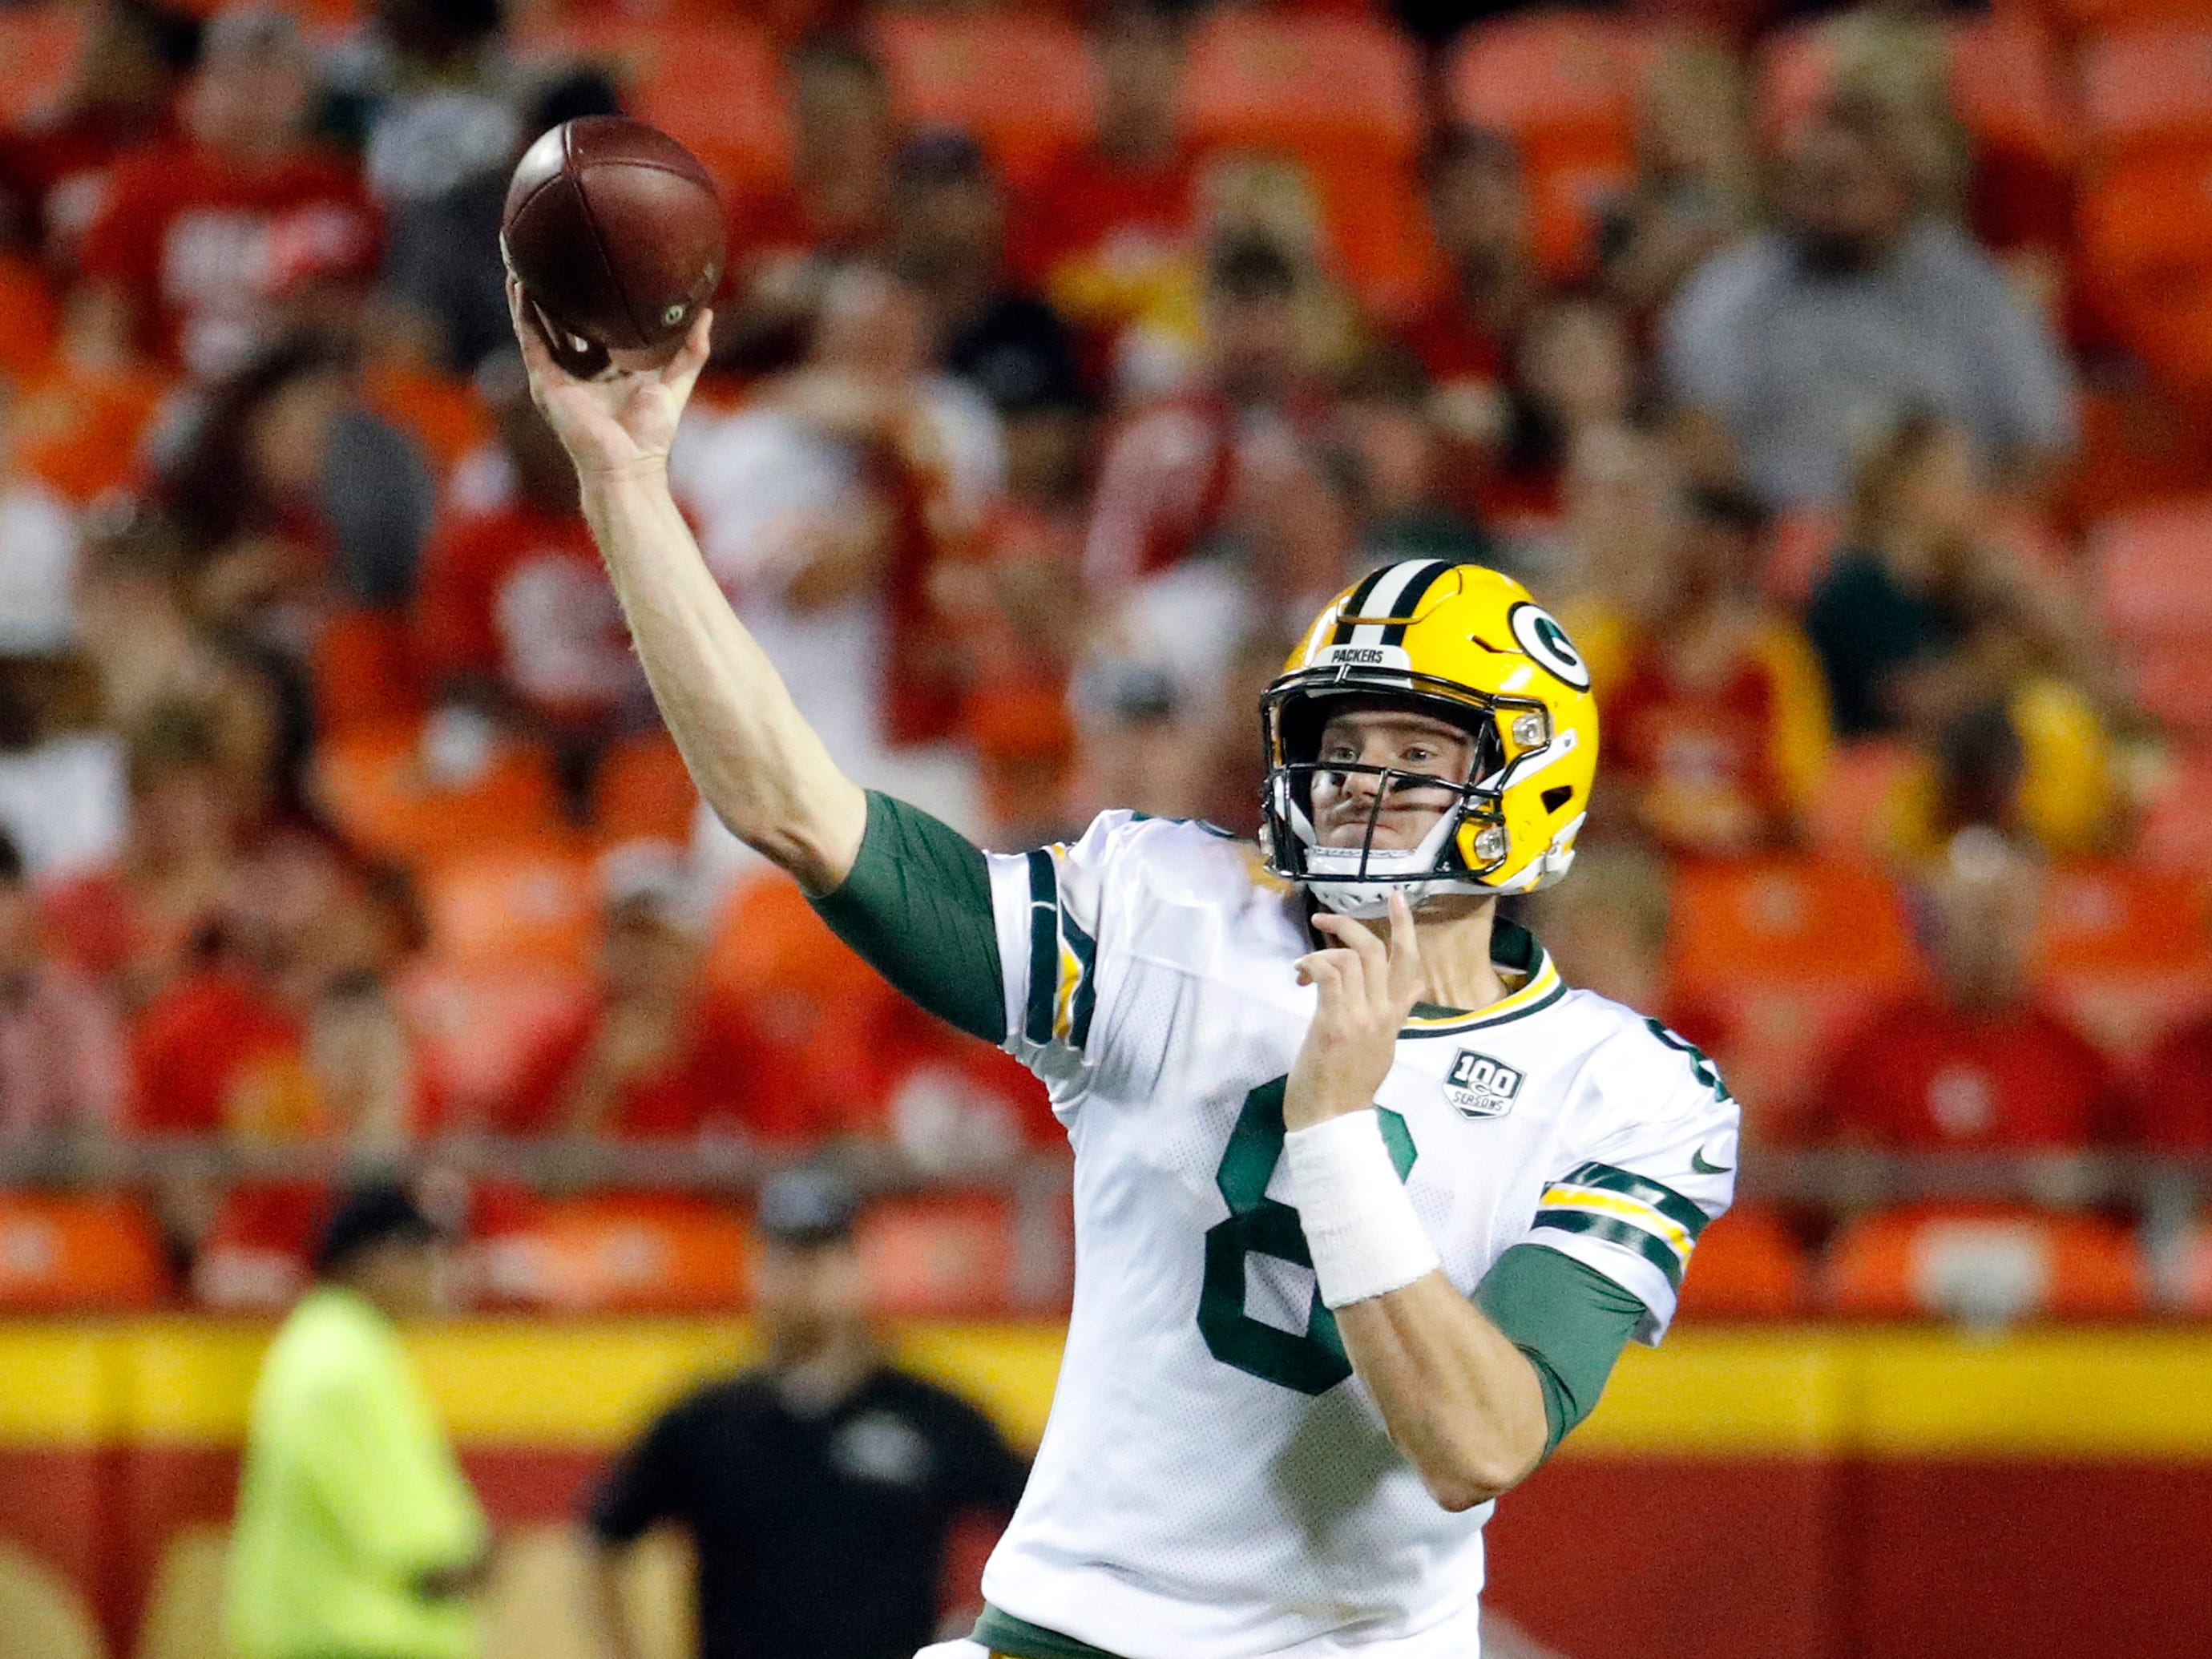 Green Bay Packers quarterback Tim Boyle (8) throws during the first half of an NFL preseason football game against the Kansas City Chiefs in Kansas City, Mo., Thursday, Aug. 30, 2018.